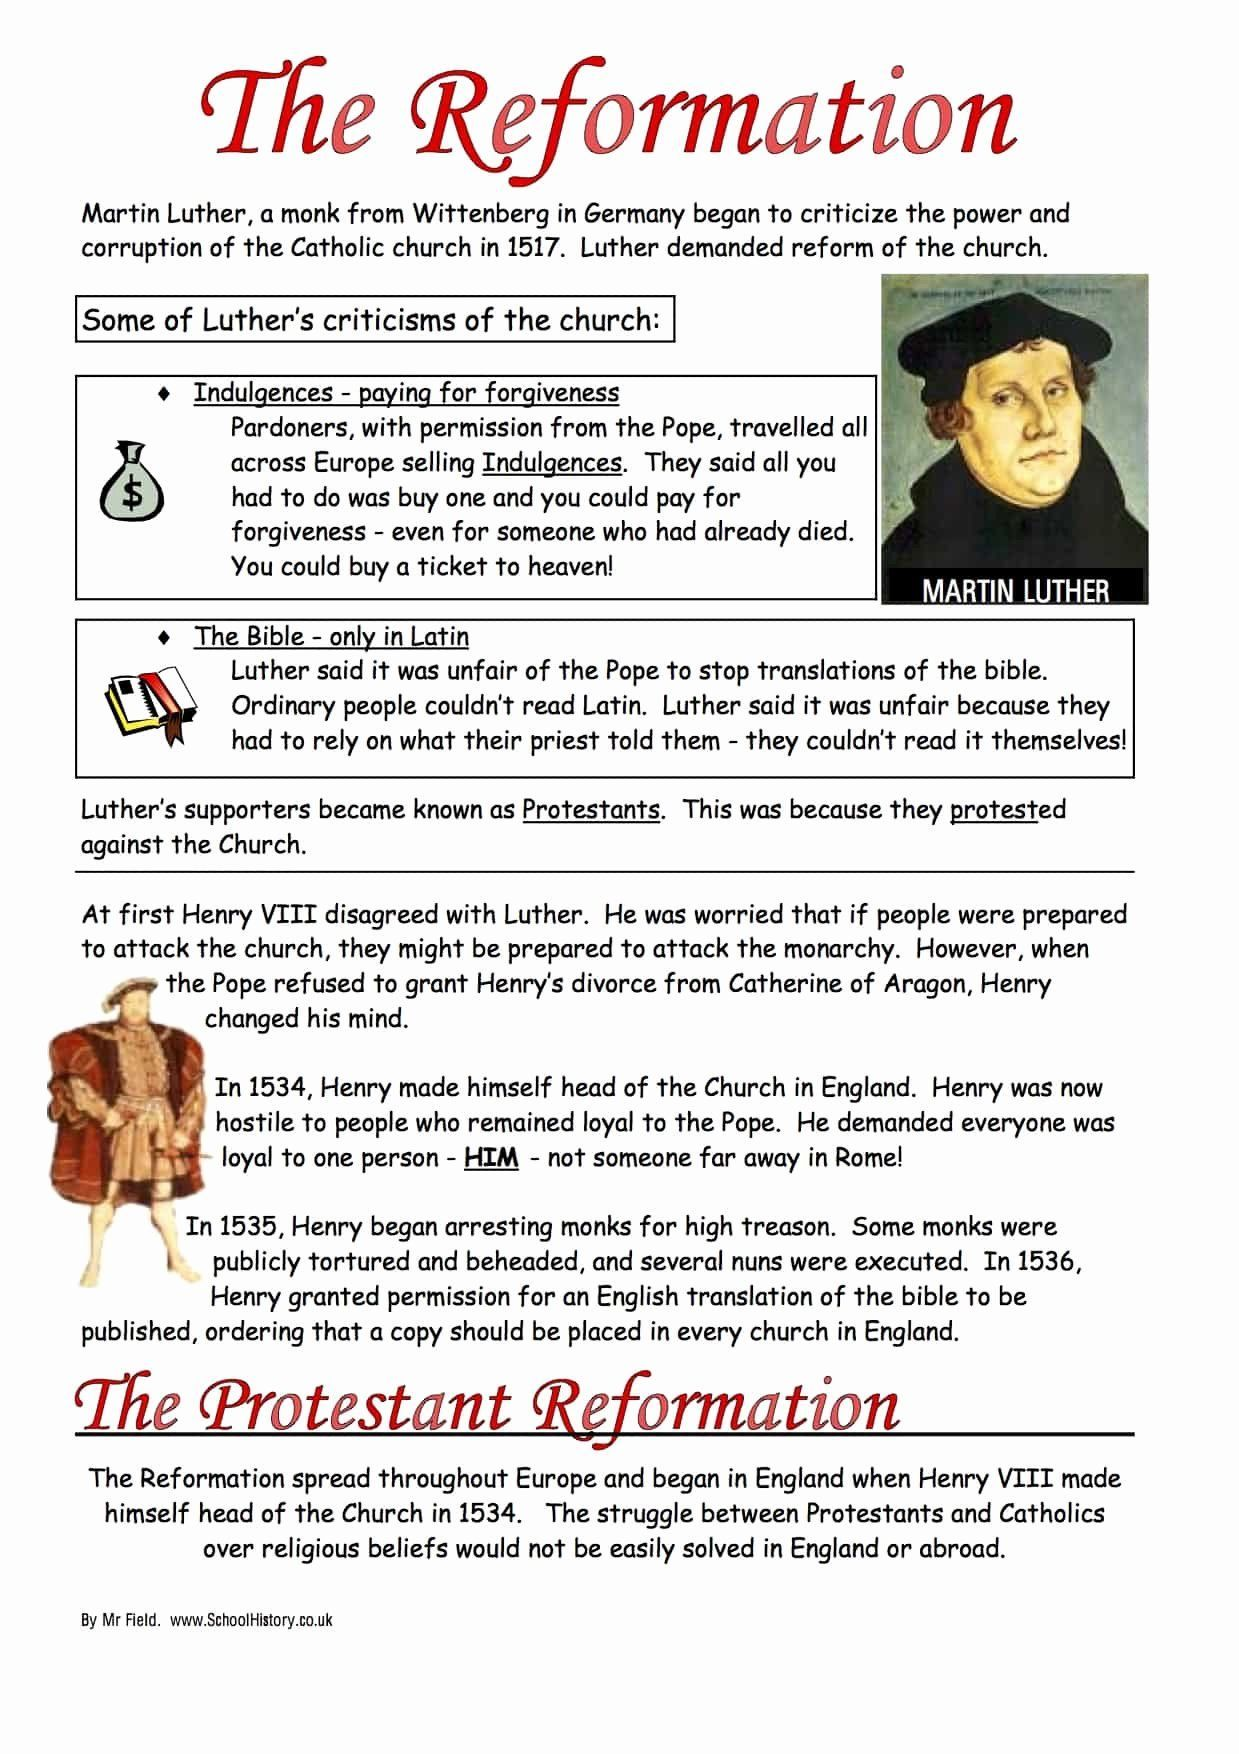 Protestant Reformation Worksheet Answers Luxury The